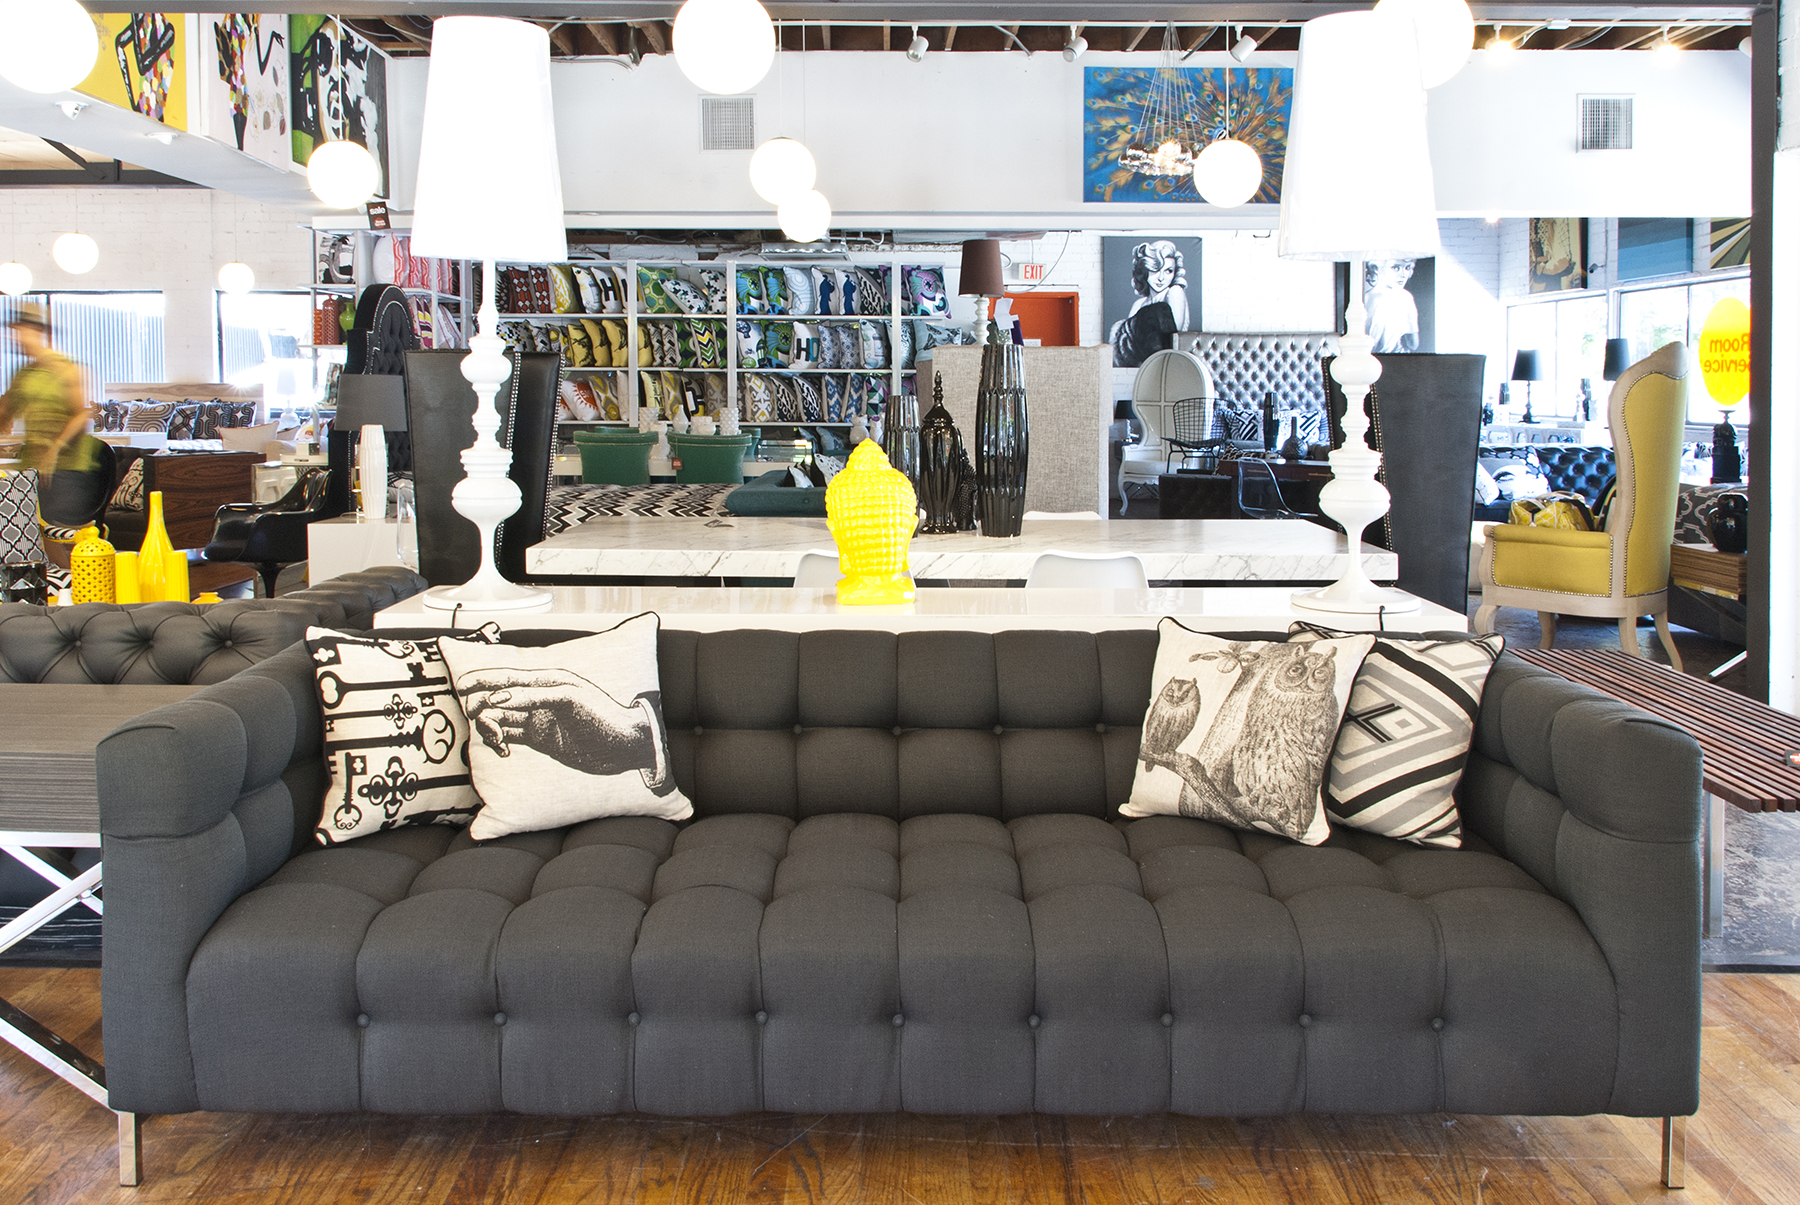 chair design for hotel wingback nailhead modern furniture store in los angeles